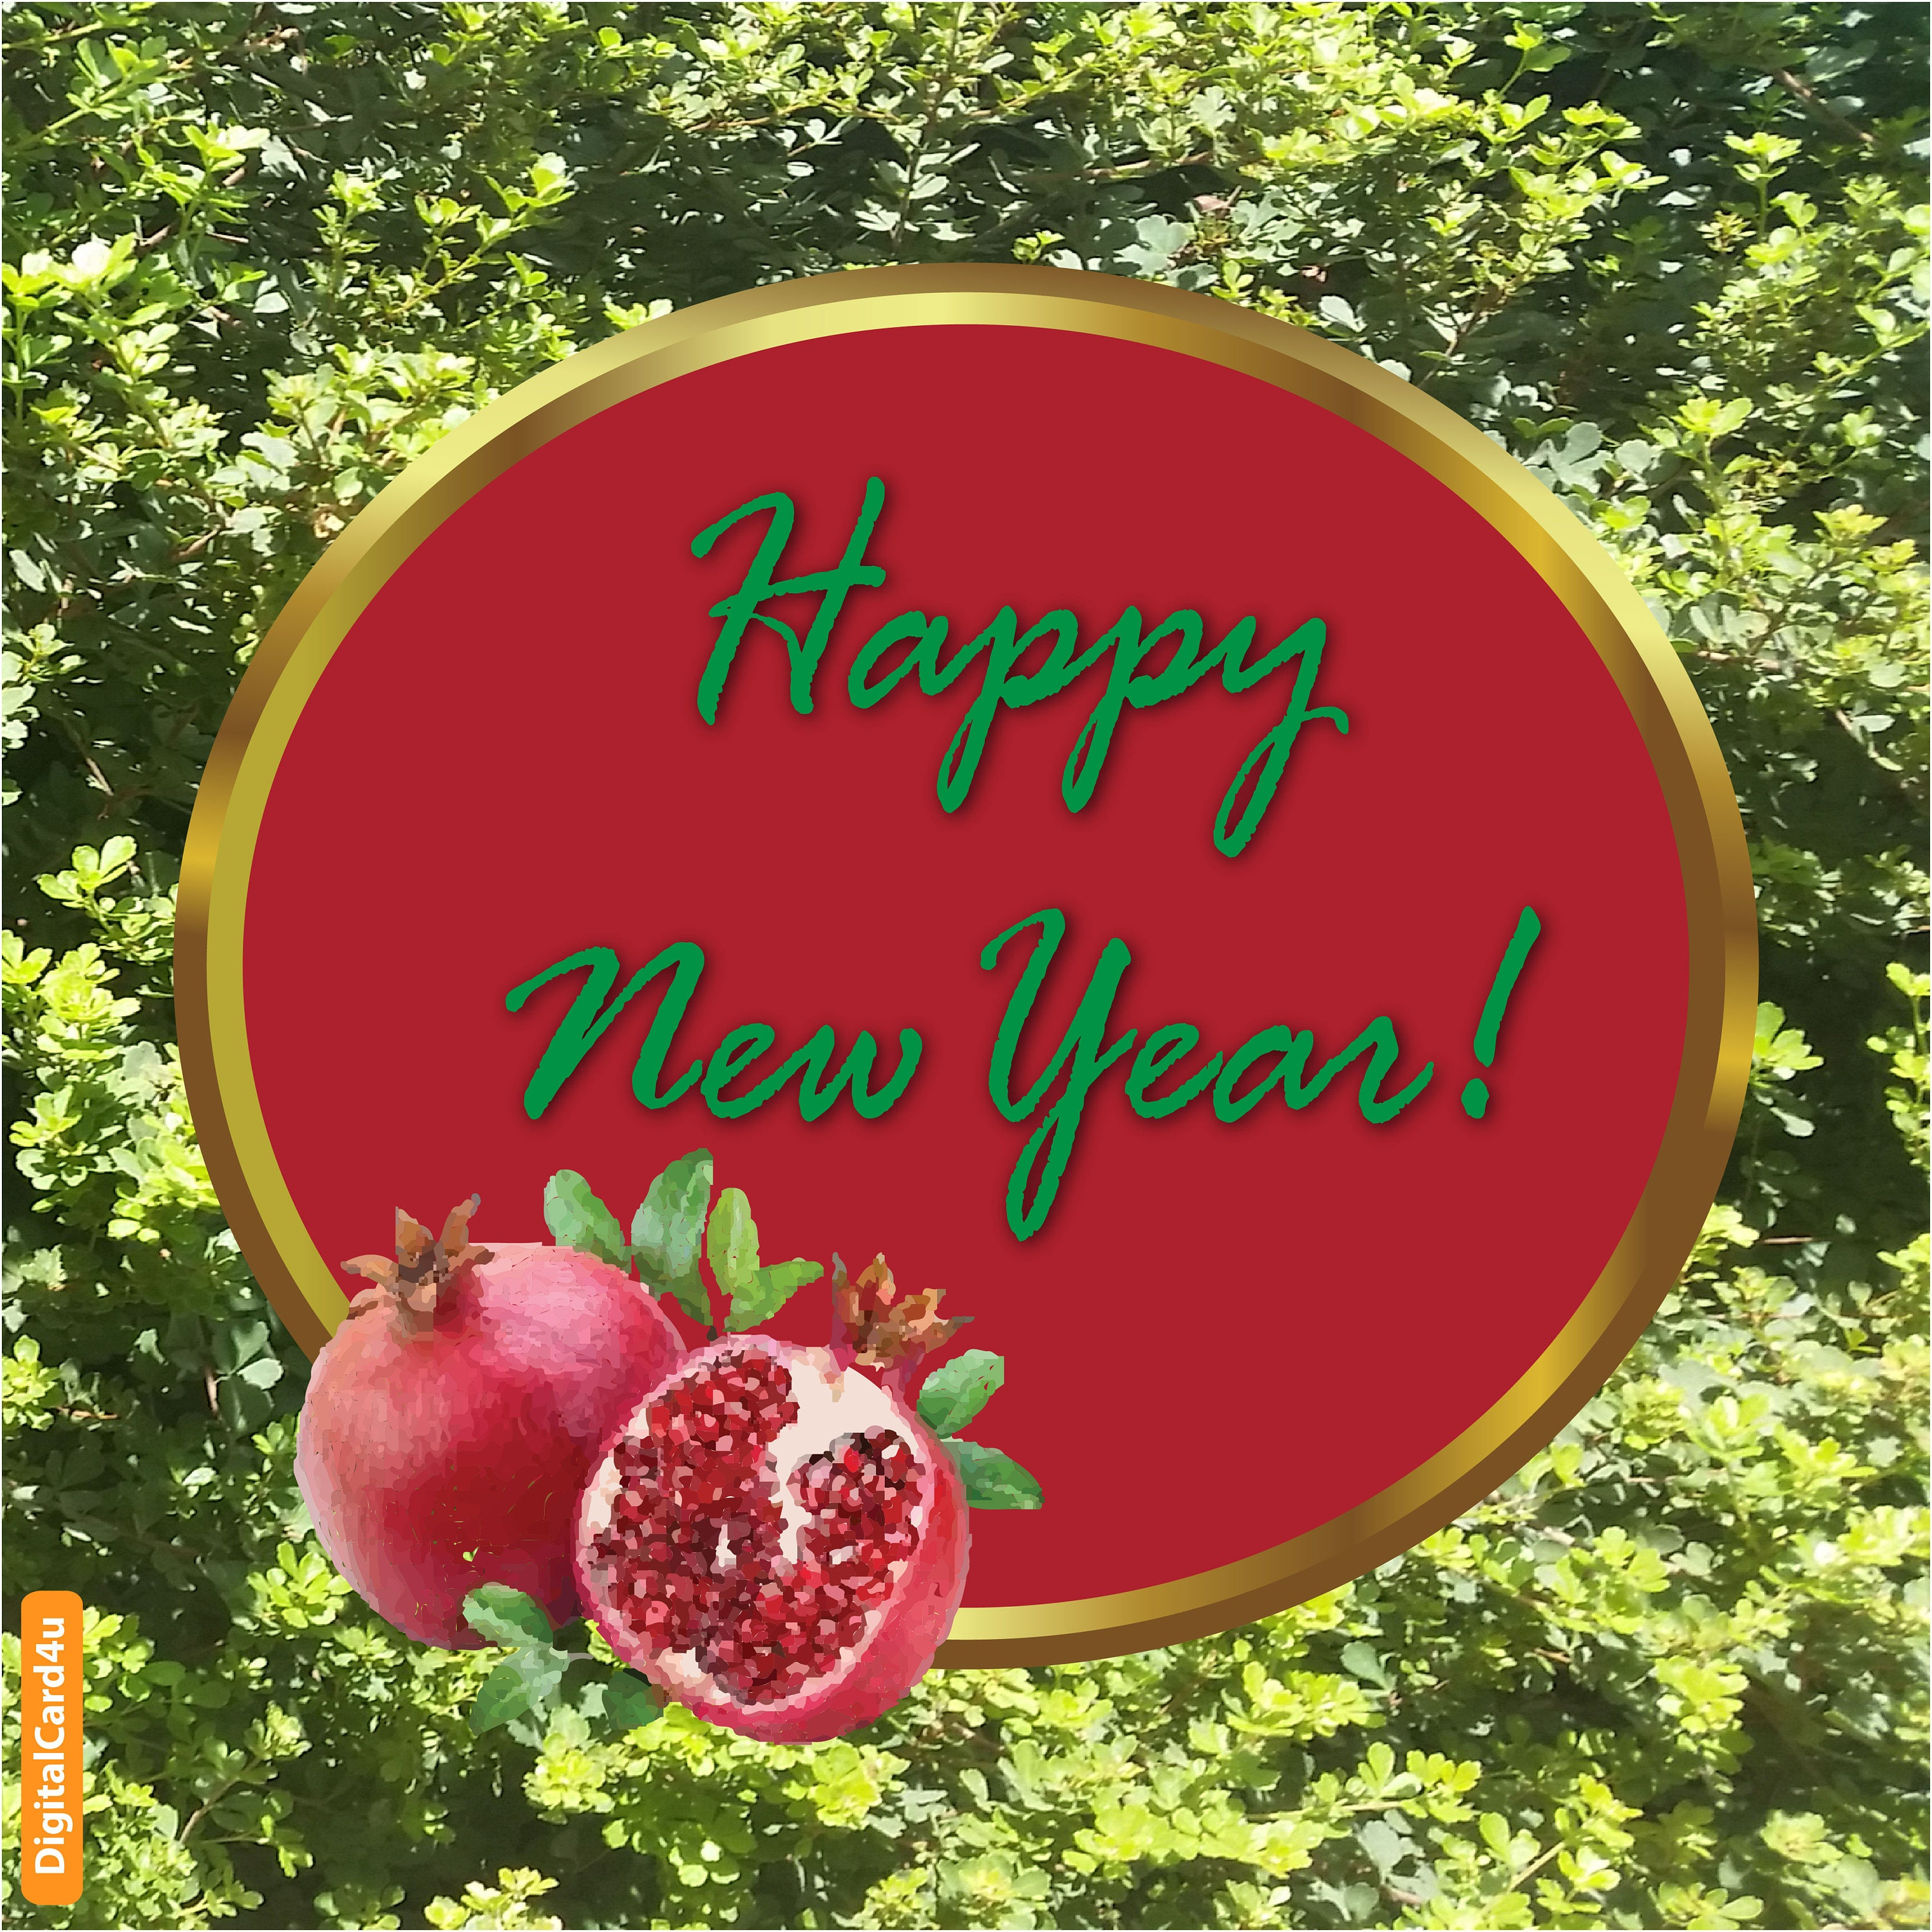 Happy new year cards greeting cards holiday cards greeting cards happy new year cards greeting cards holiday cards greeting cards e cards kristyandbryce Images